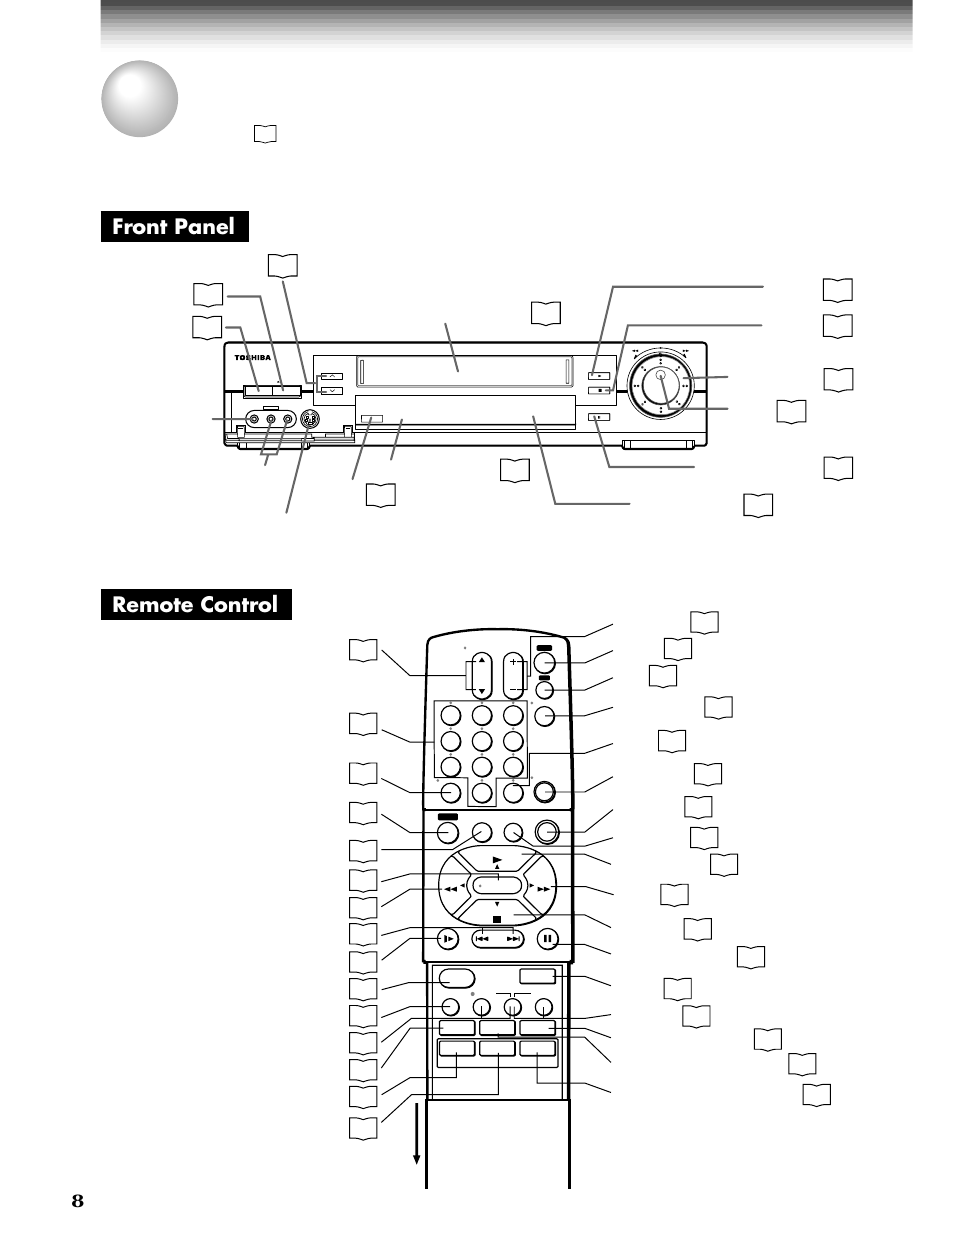 Introduction, Identification of controls, Front panel